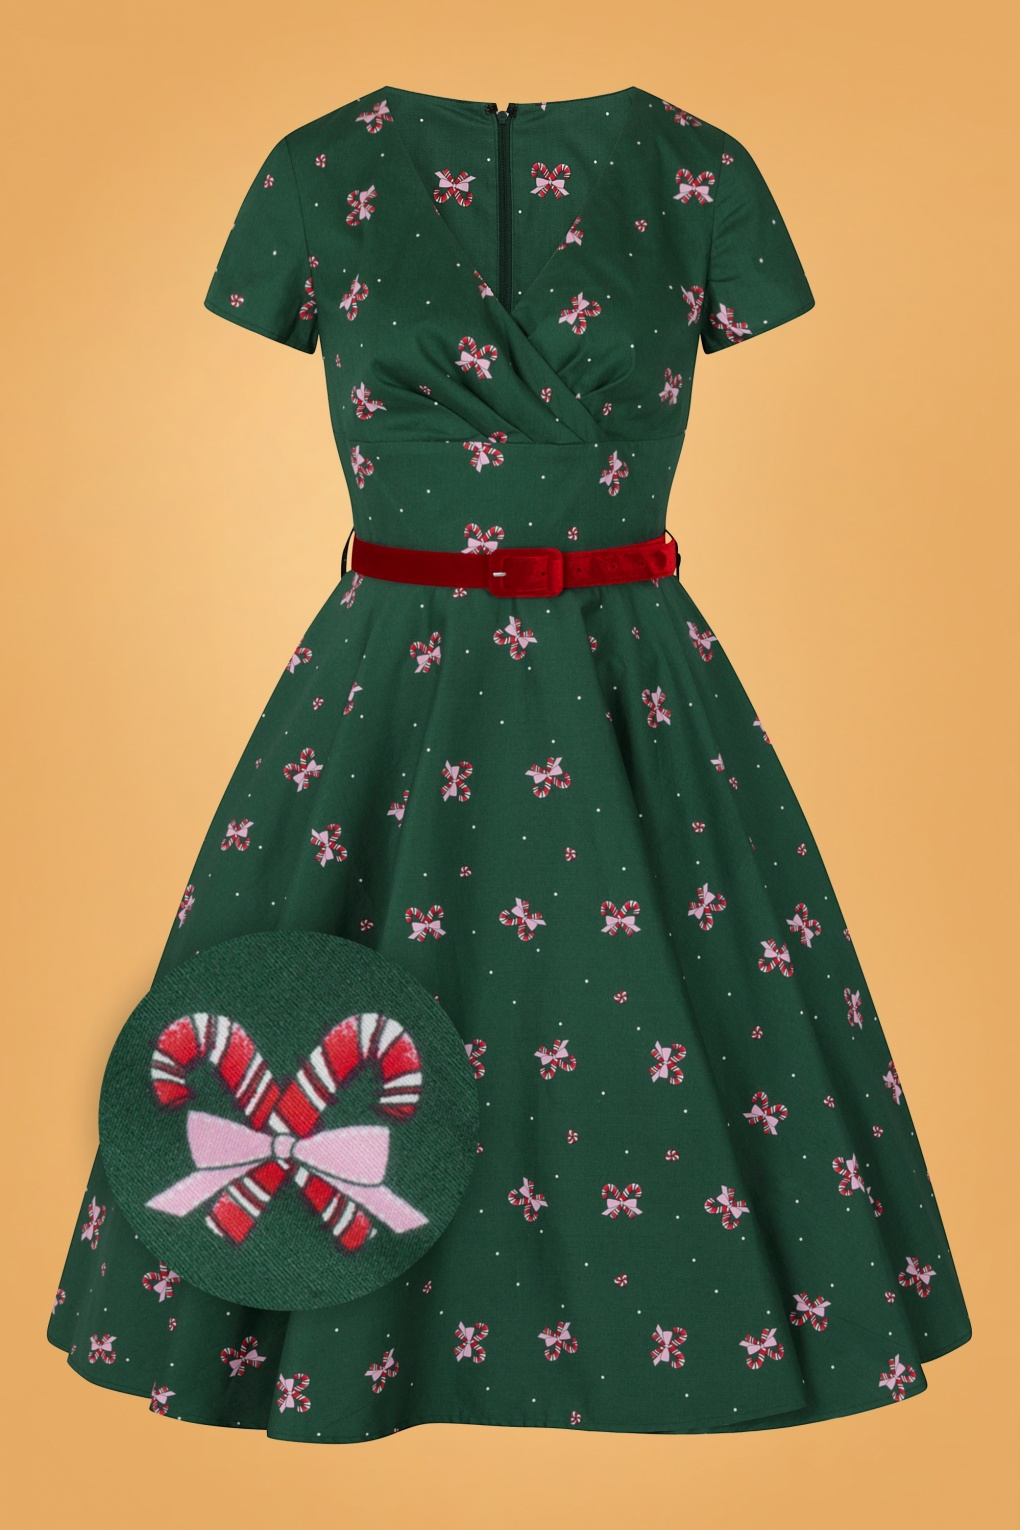 Vintage Style Dresses | Vintage Inspired Dresses 50s Beth Swing Dress in Dark Green £67.84 AT vintagedancer.com